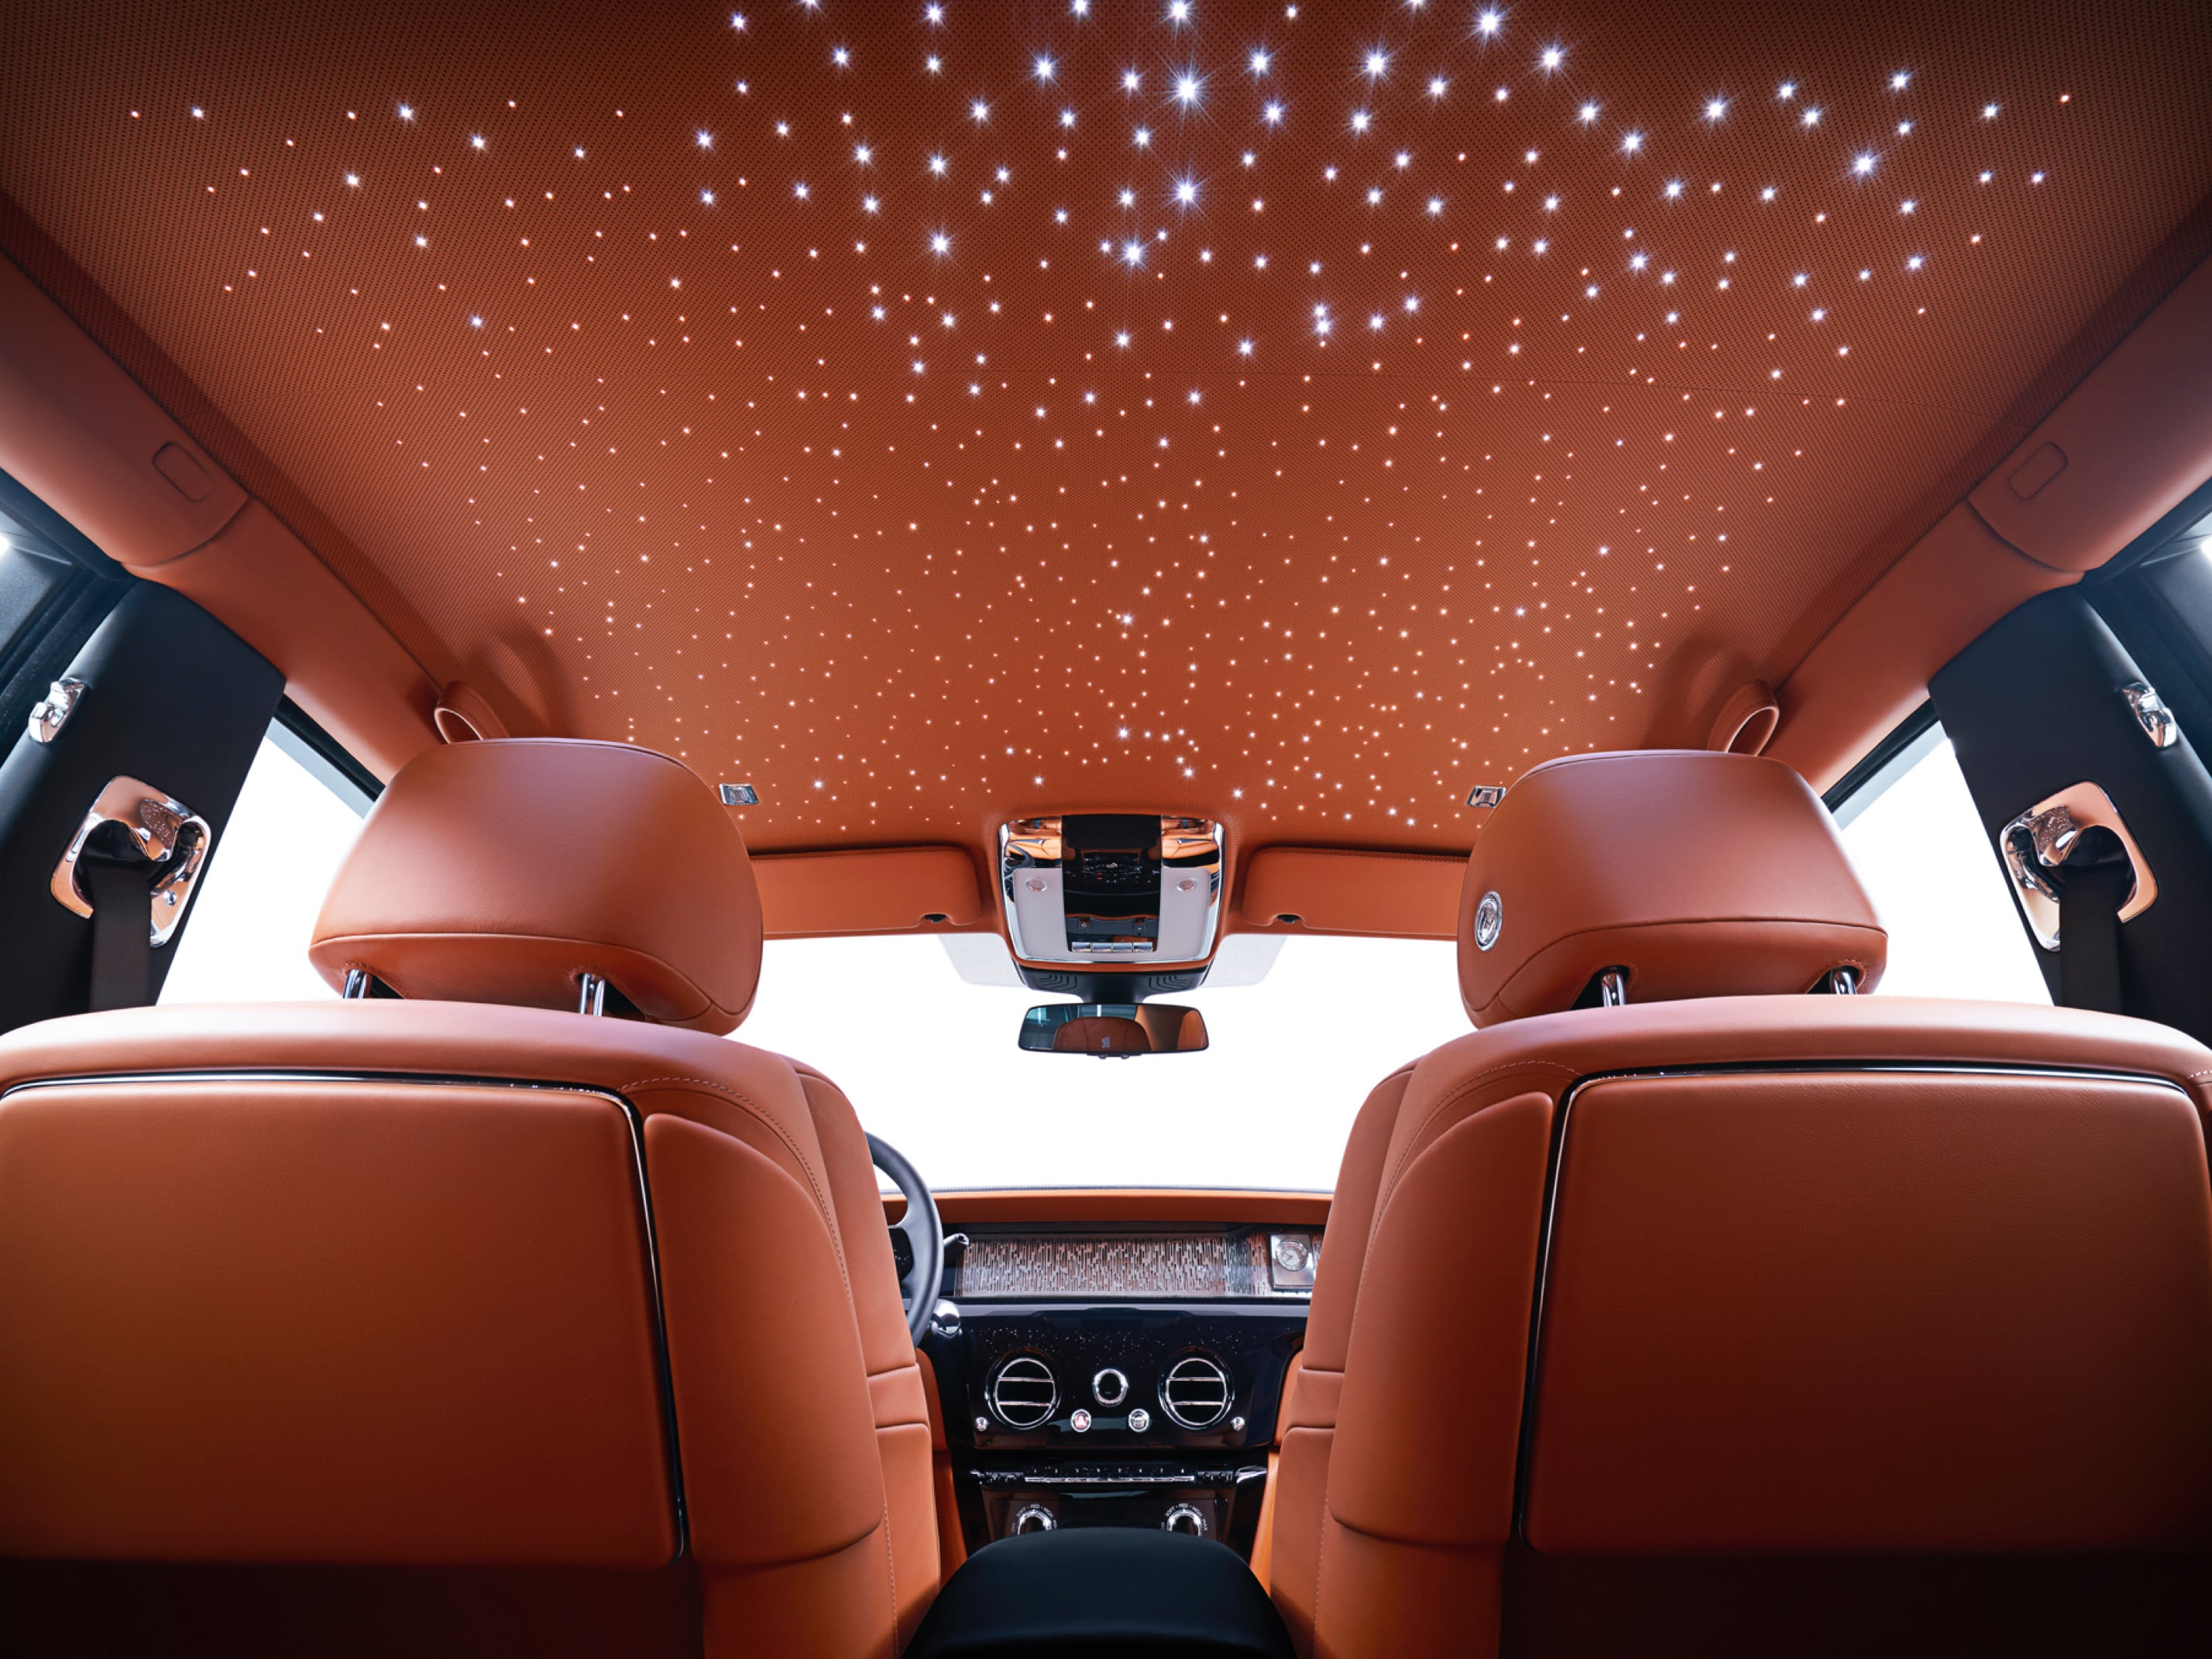 An interior shot of the starlight roof in a Rolls-Royce Phantom motor car